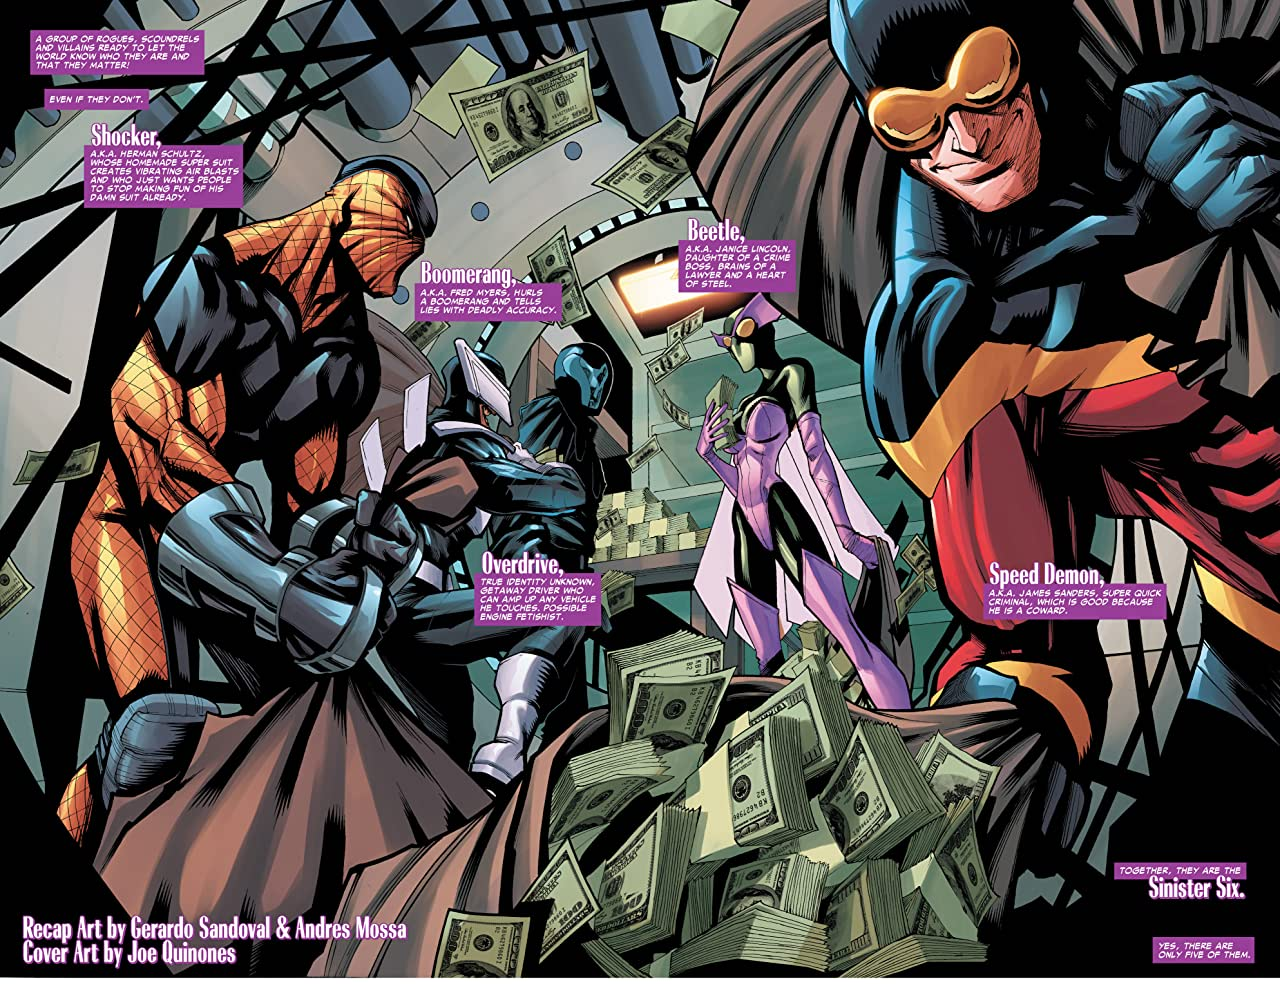 The Superior Foes of Spider-Man #10